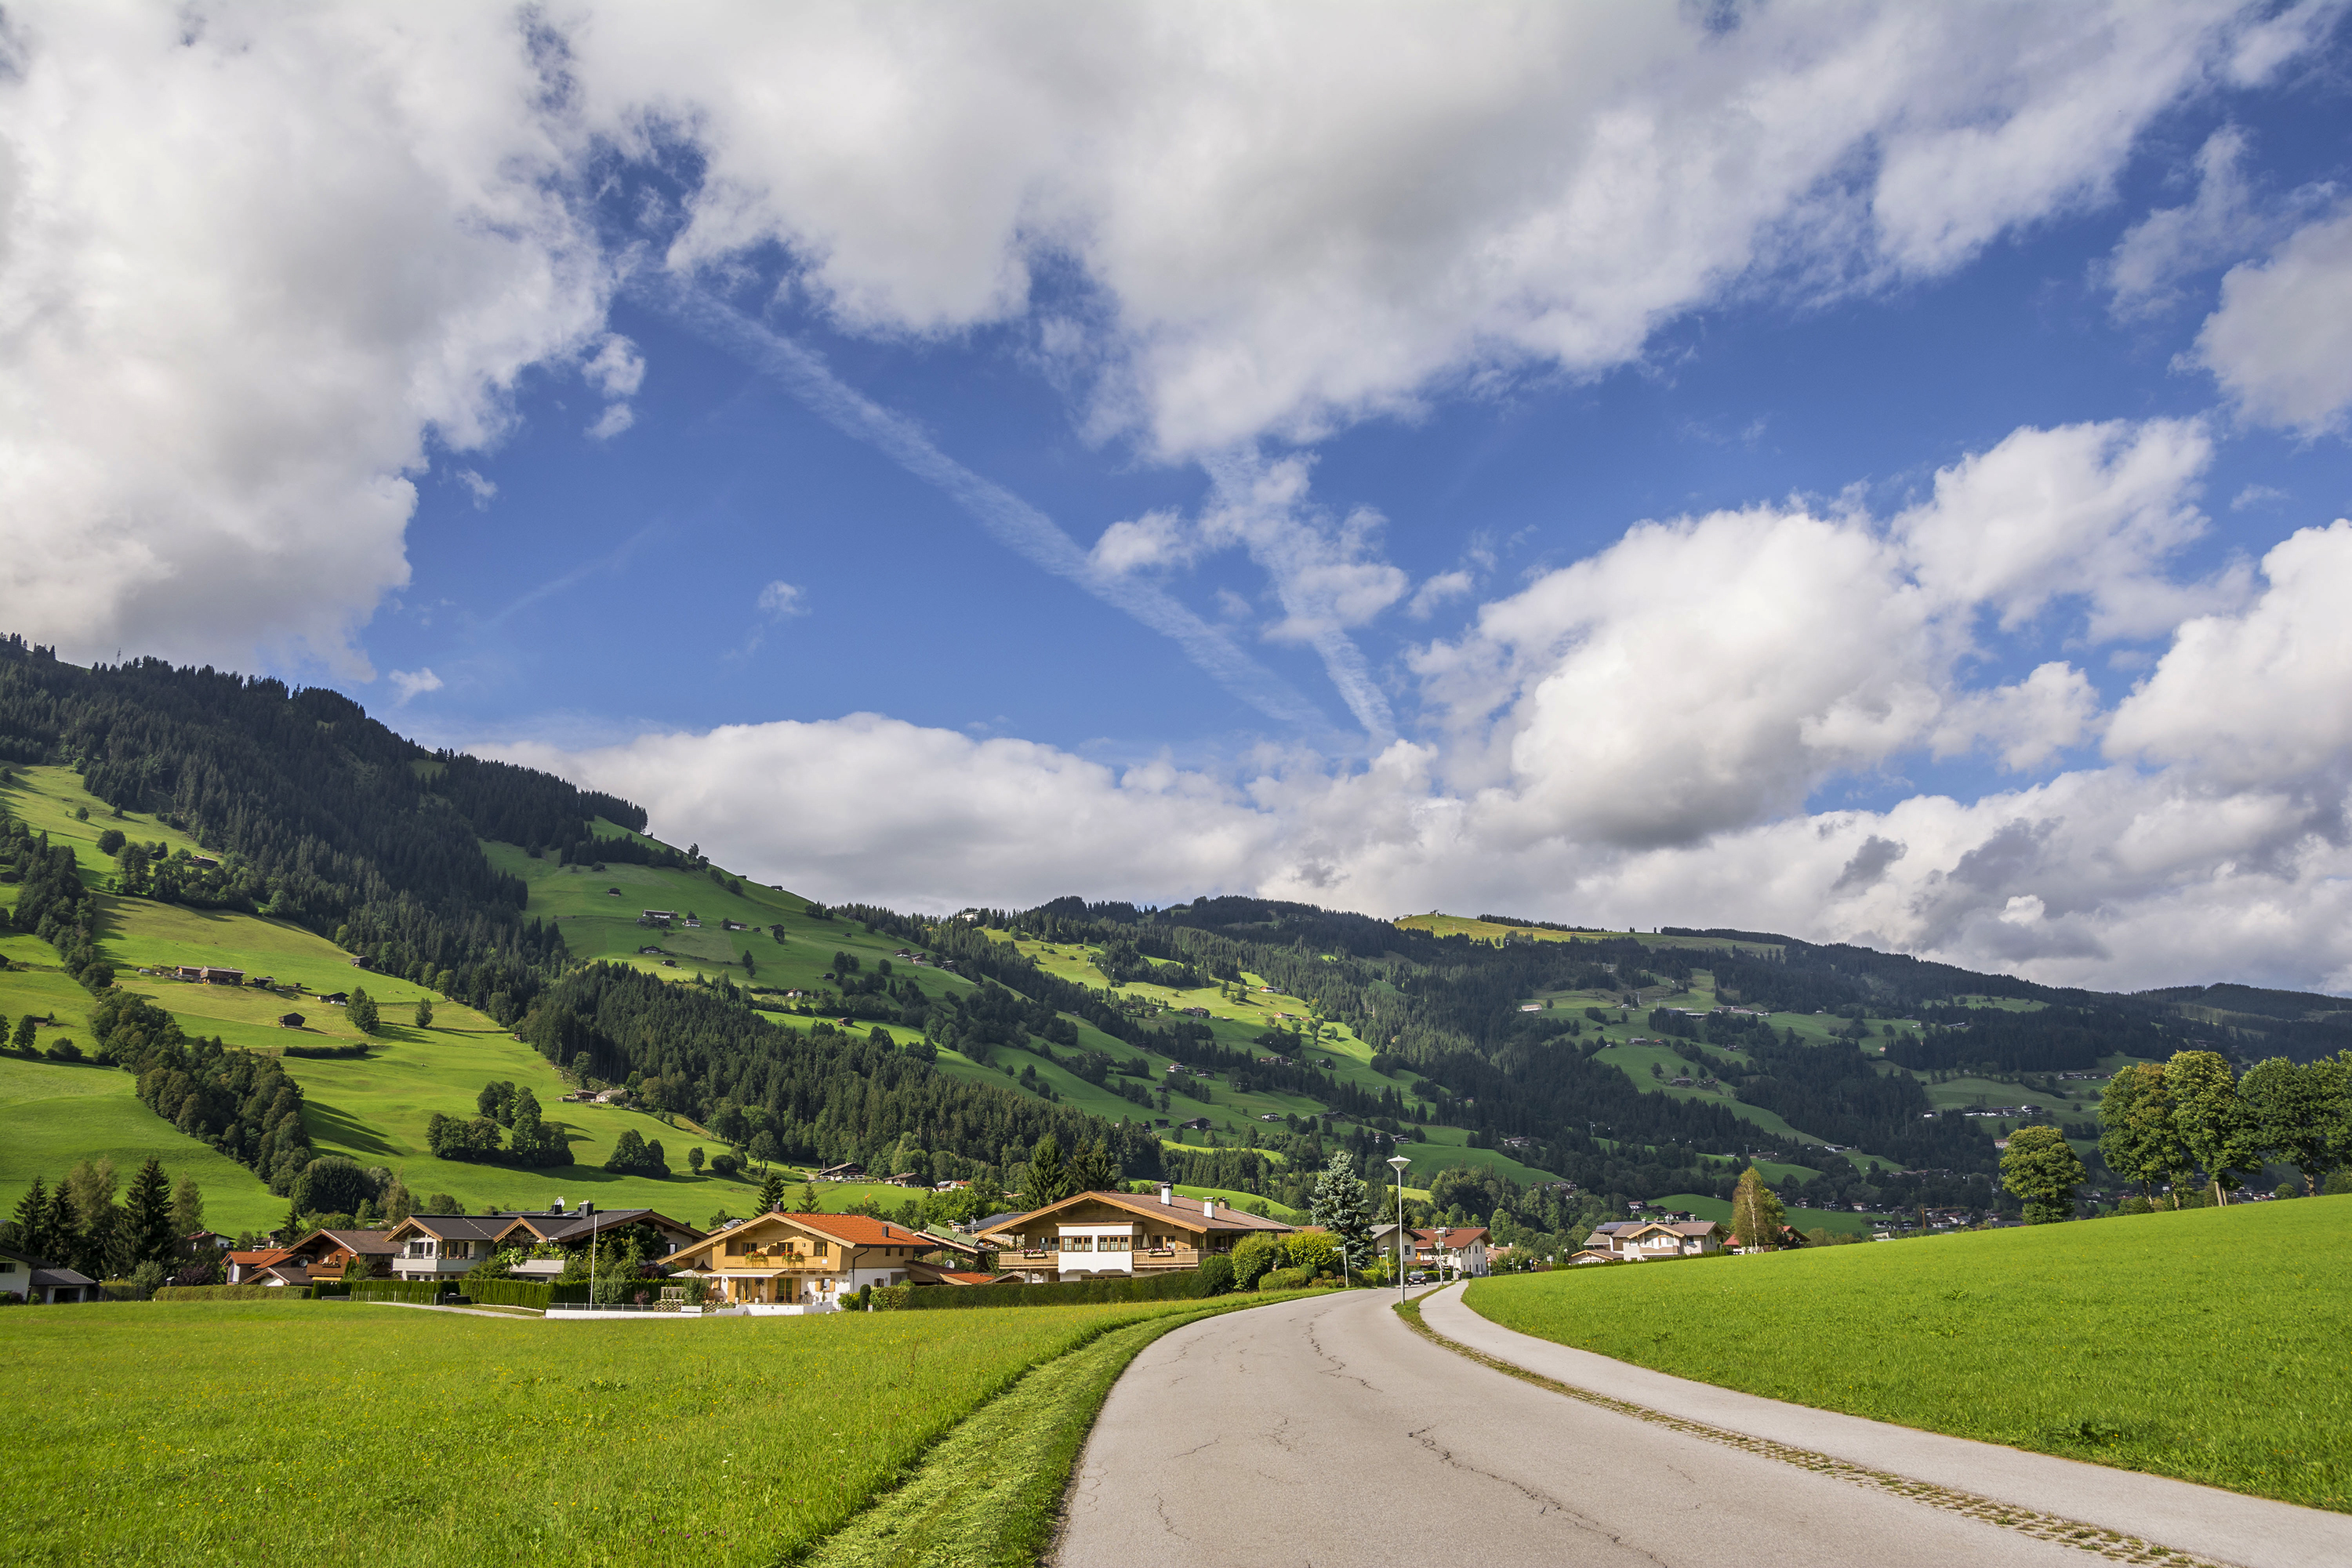 Sun, Brixen im Thal, Valley, green